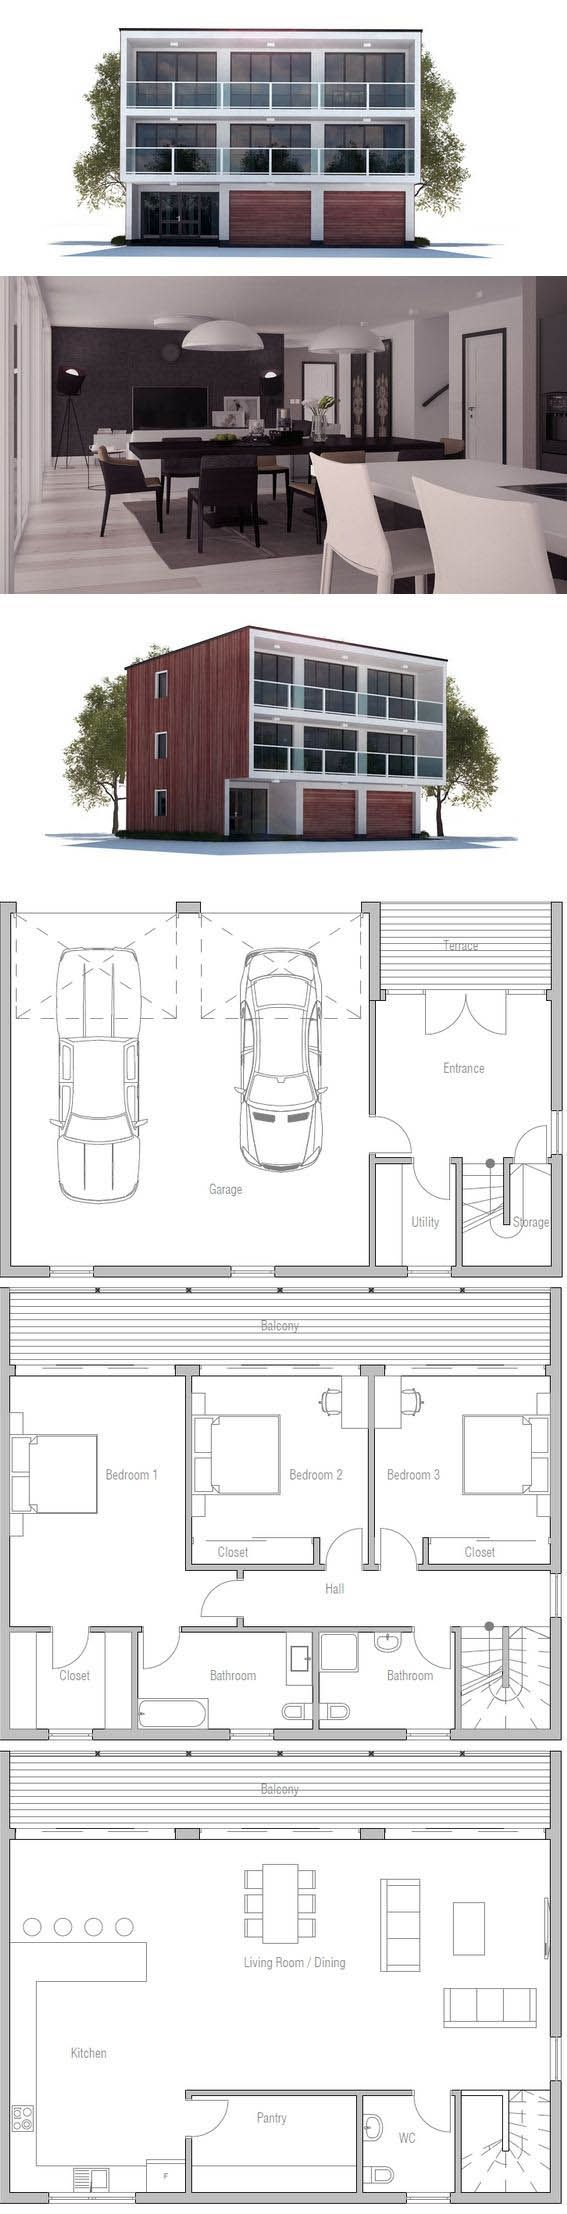 38 best tiny lot house plans images on pinterest small houses